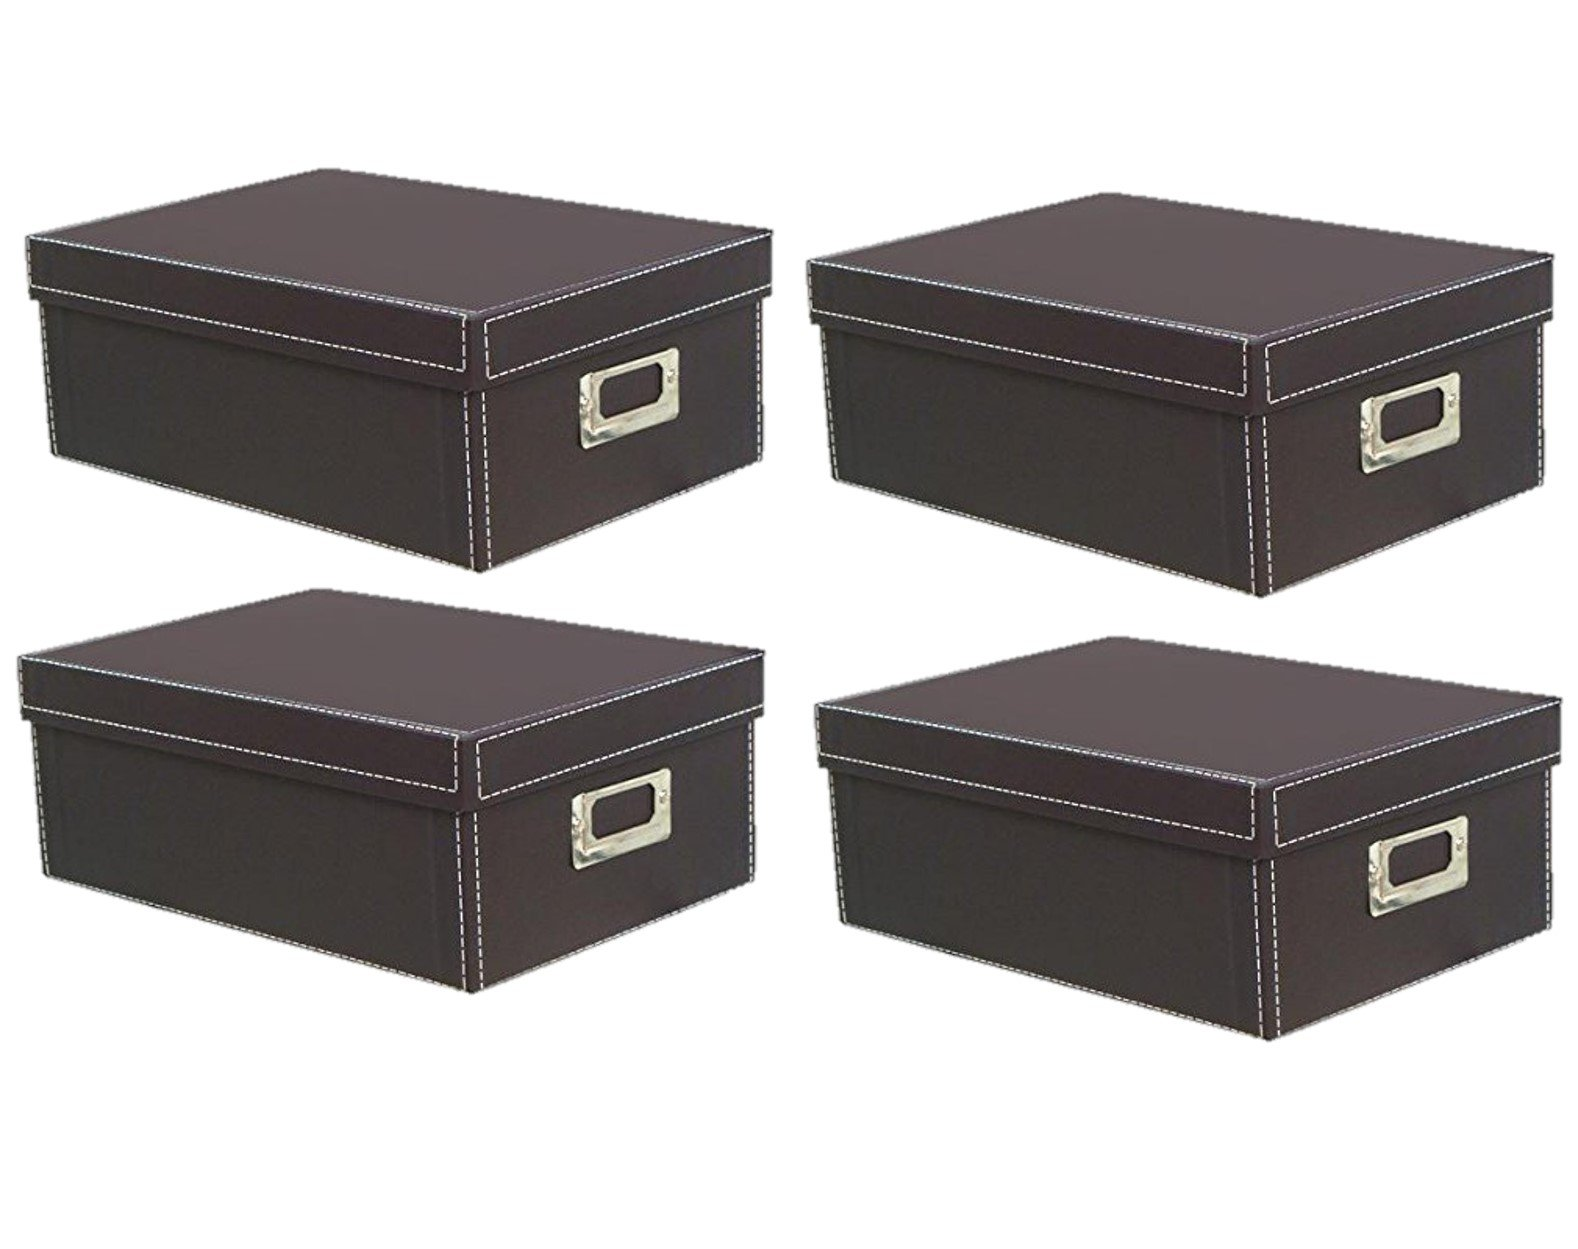 KVD Photo Storage Boxes, for 4x6 5x7 Photos, DVDs and Negatives, Brown 4pk